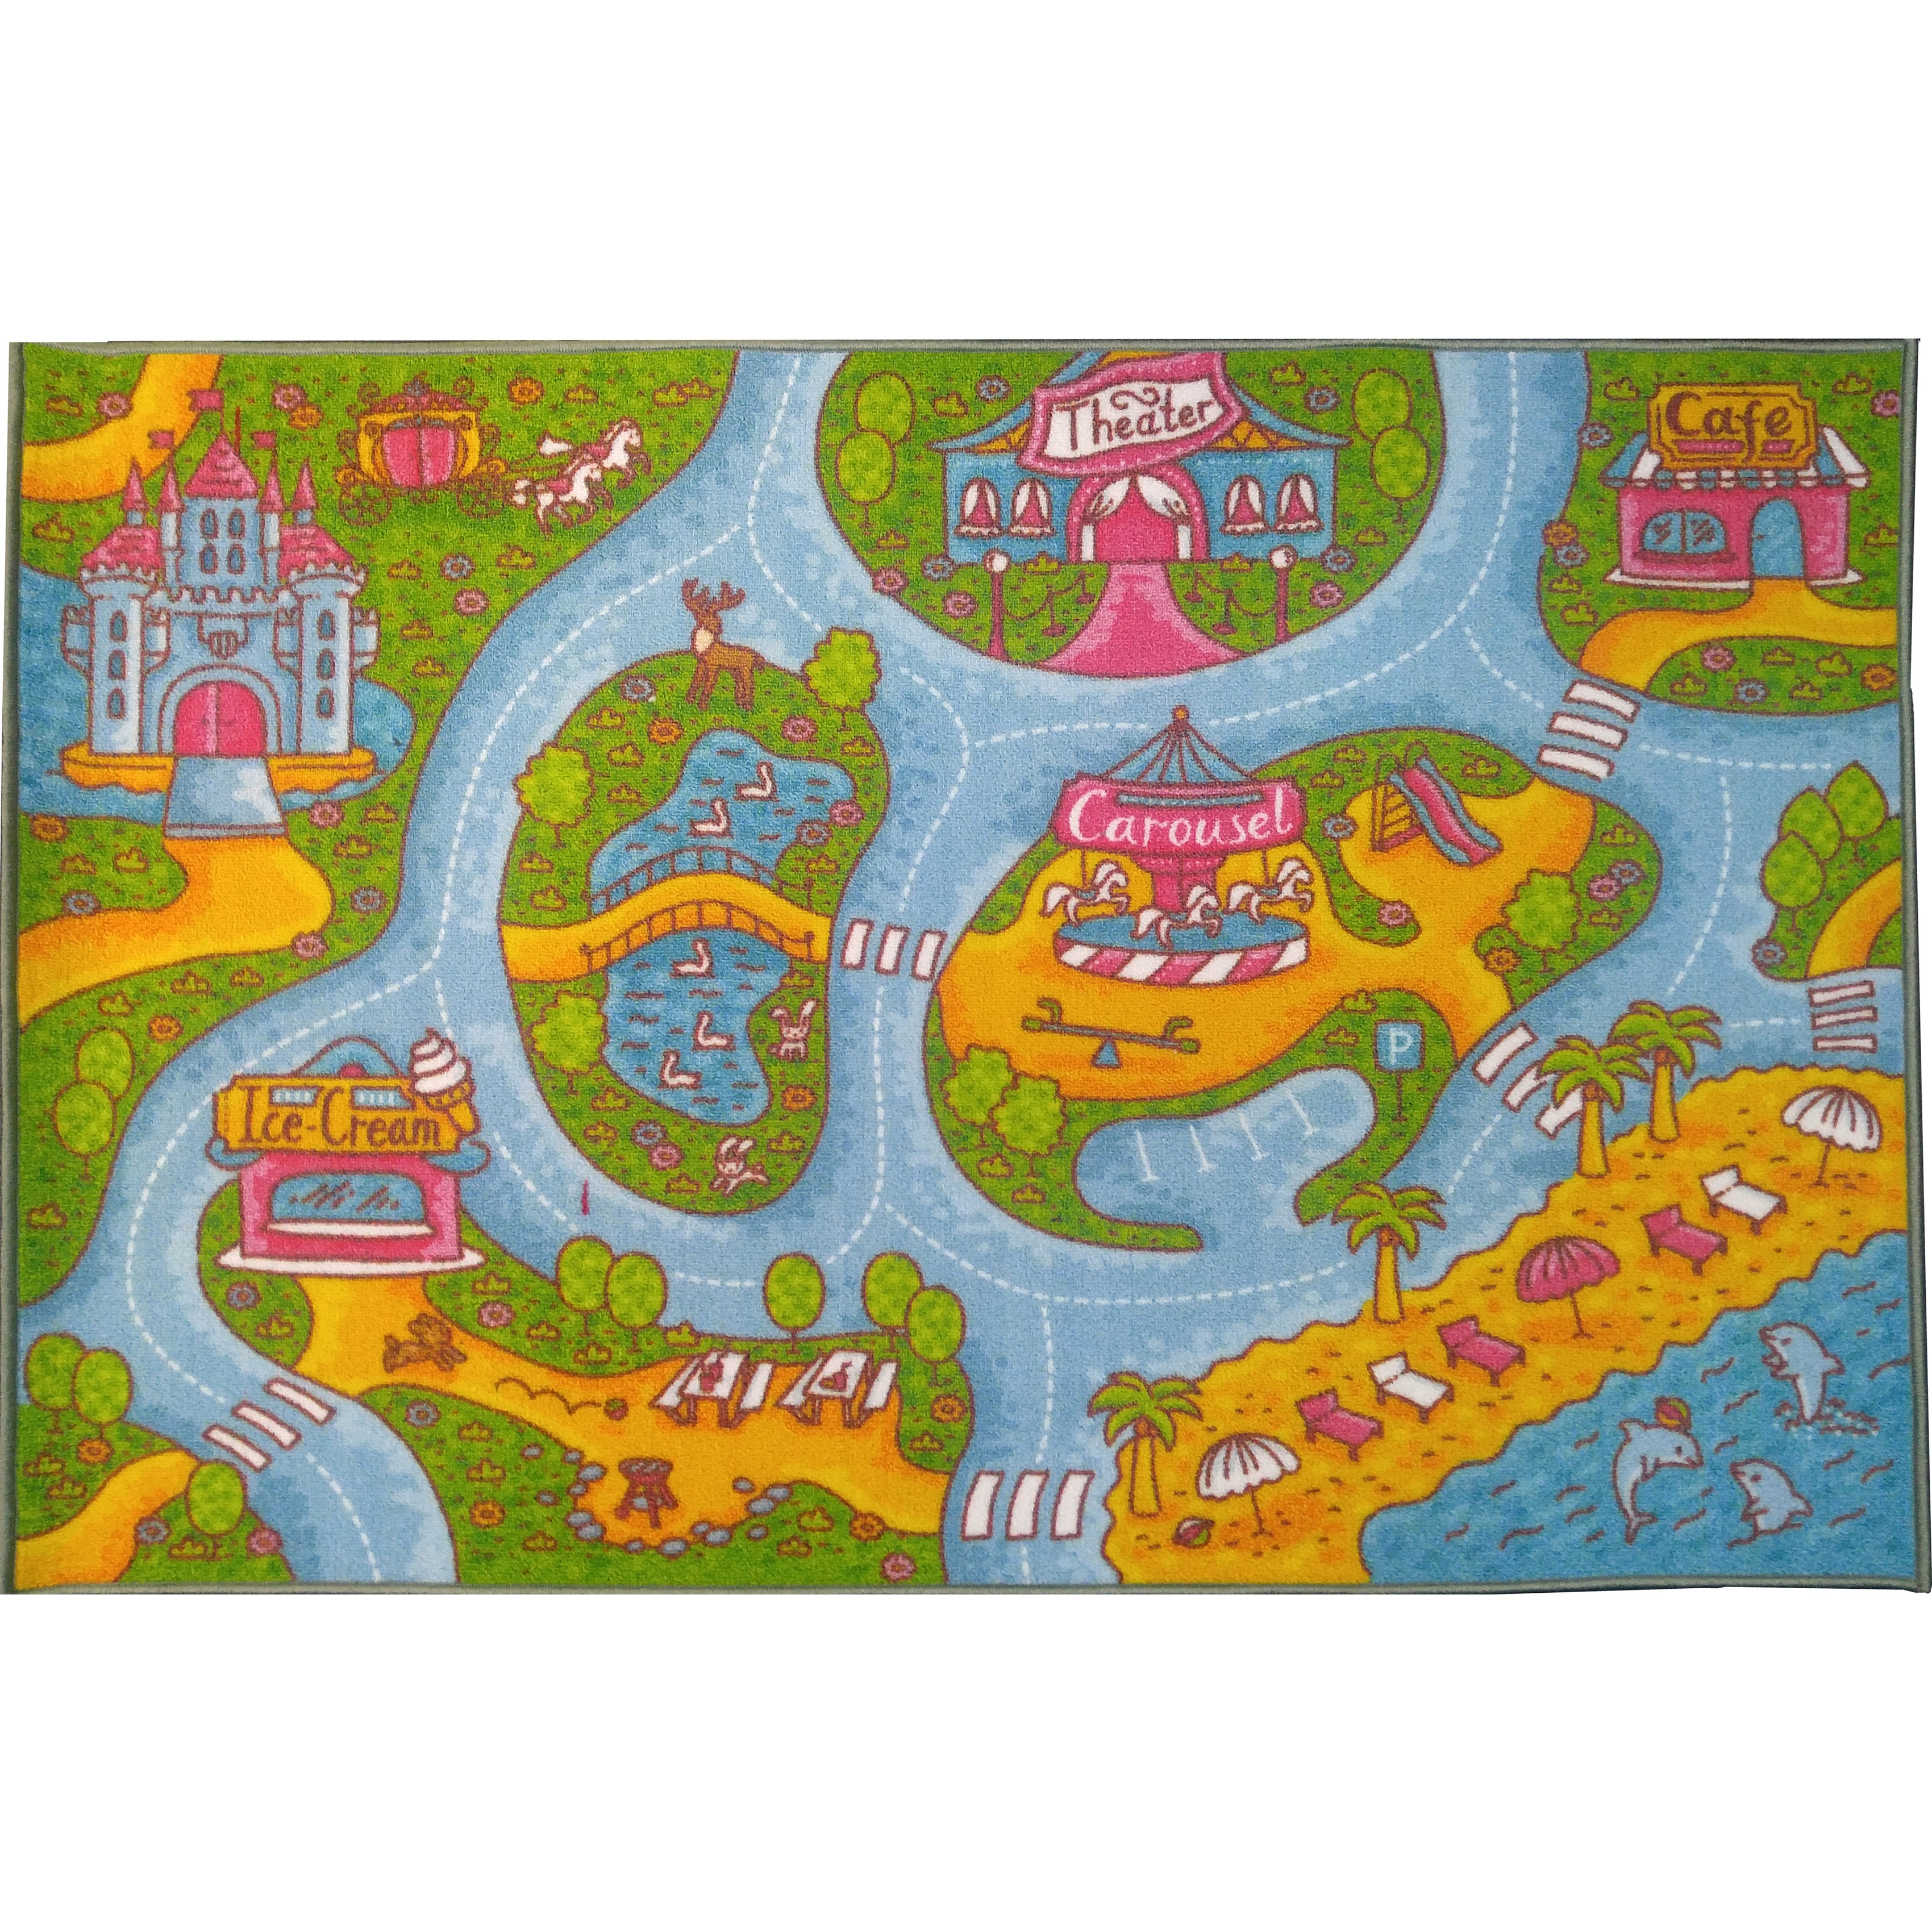 Kids Road Map Rug Rugs Compare Prices At Nextag - Kids road map